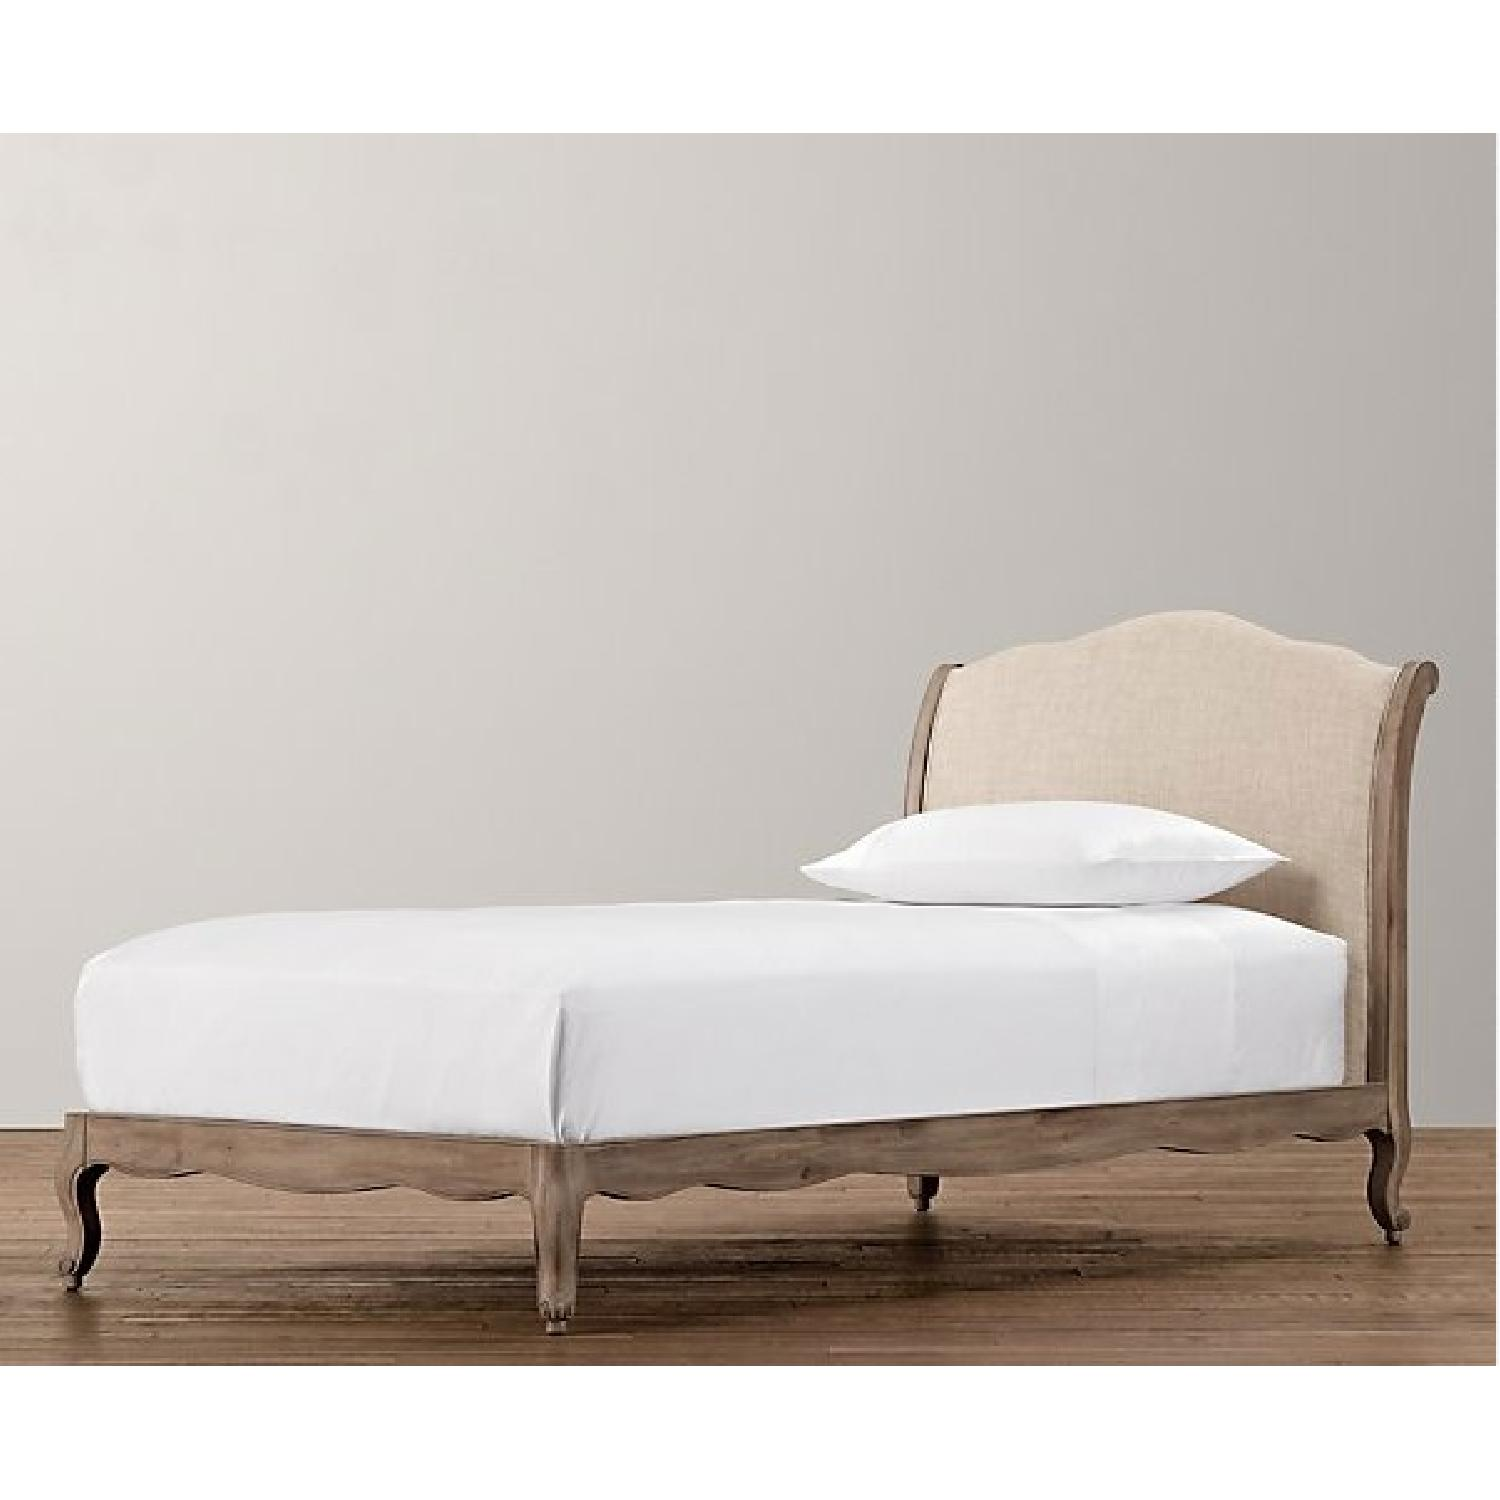 Restoration Hardware Lea Upholstered Twin Size Platform Beds - Pair - image-1